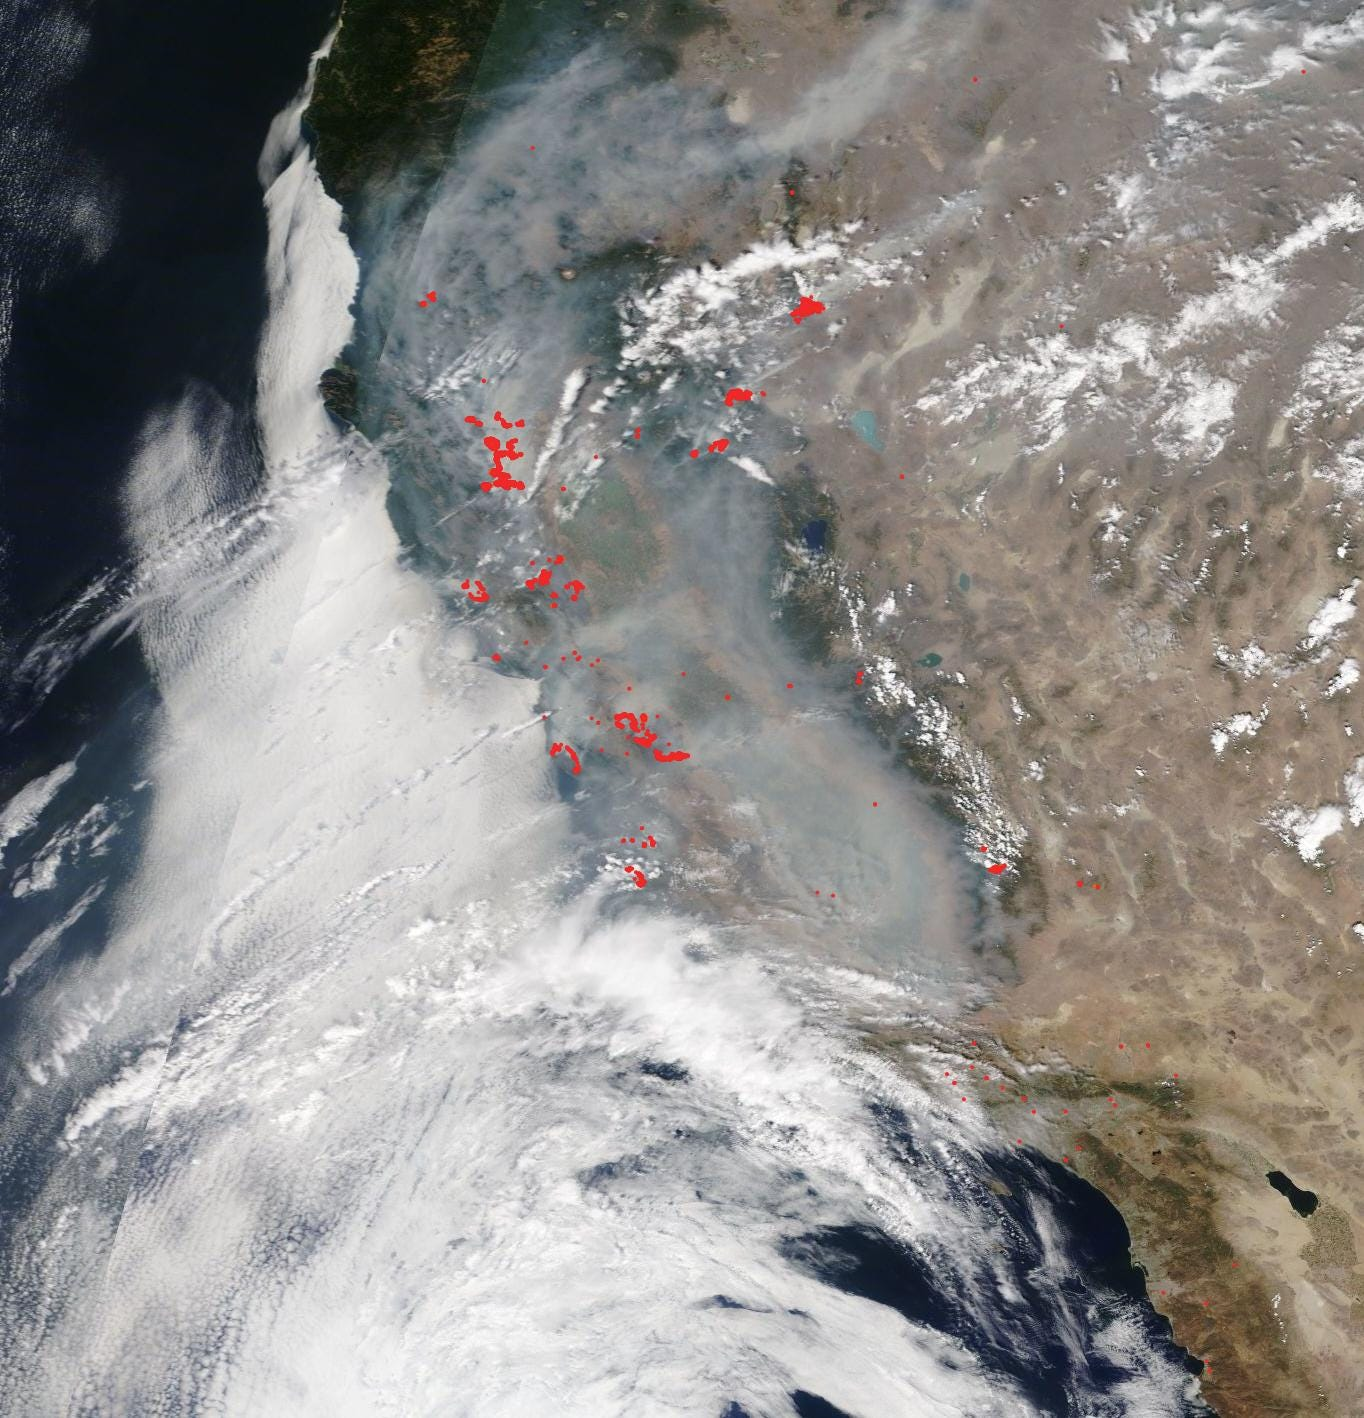 Smoke and fire as seen from space over California